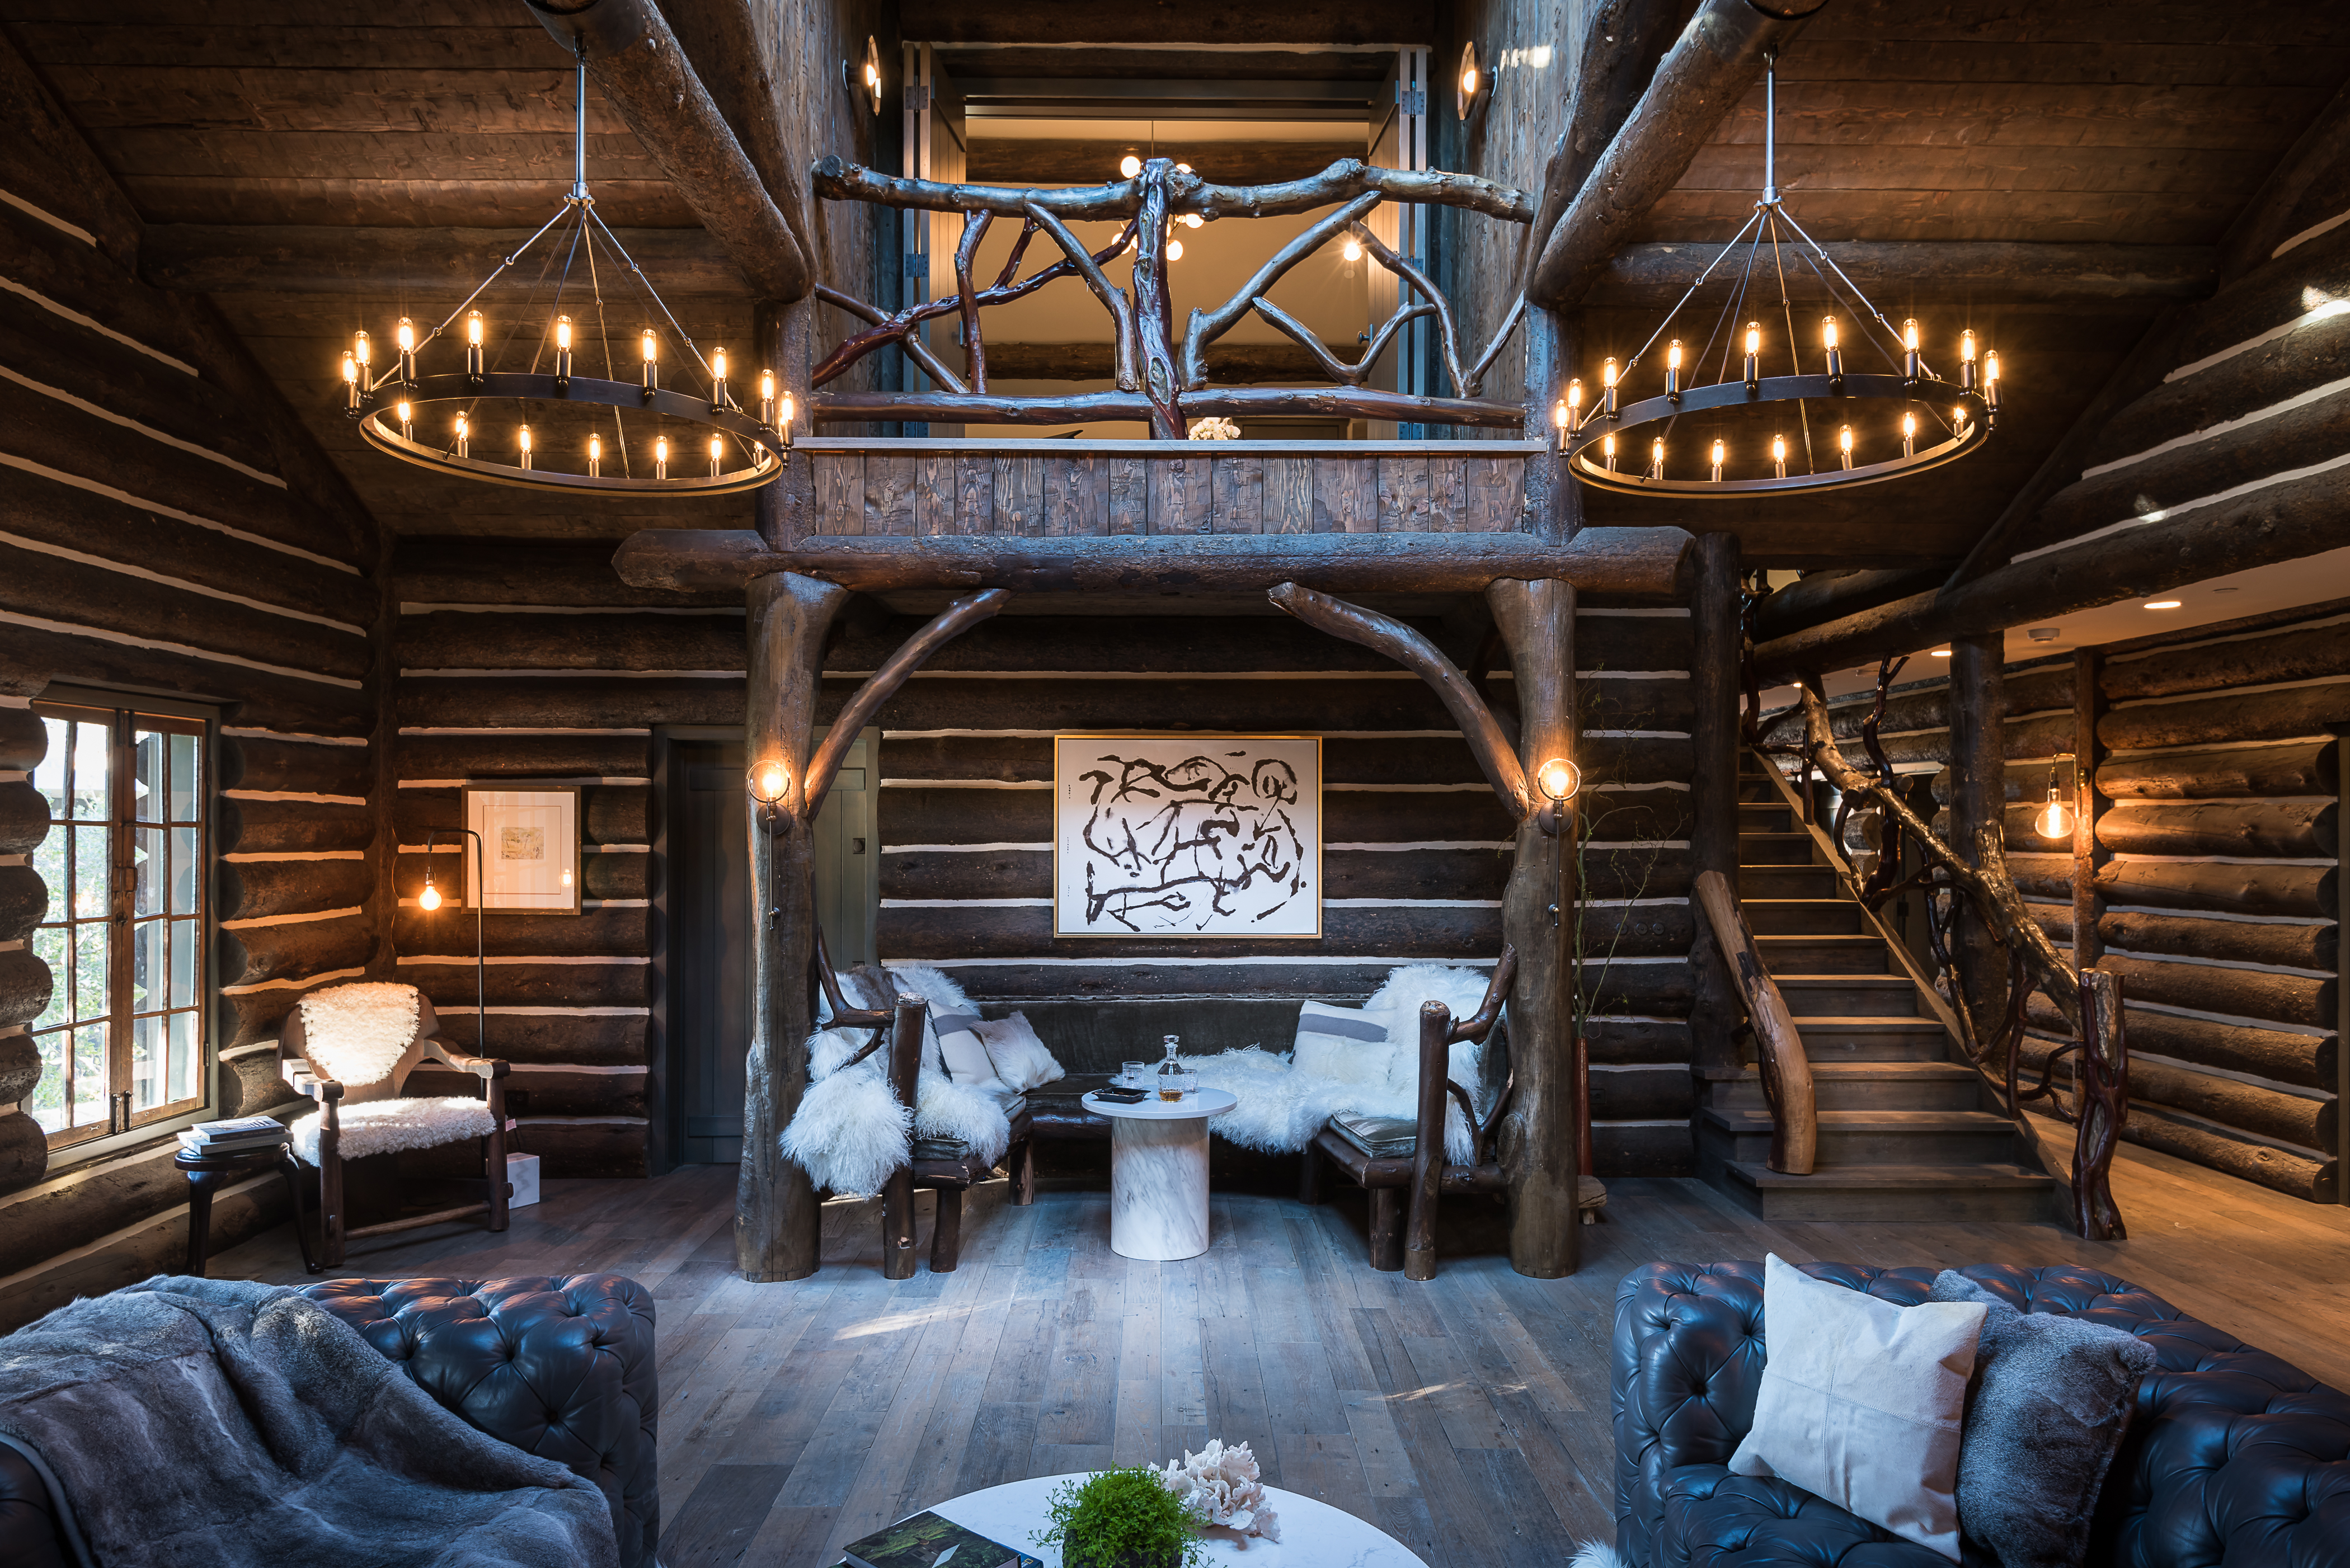 Luxurious rustic canyon log cabin with wild past lists for for Elevated log cabin